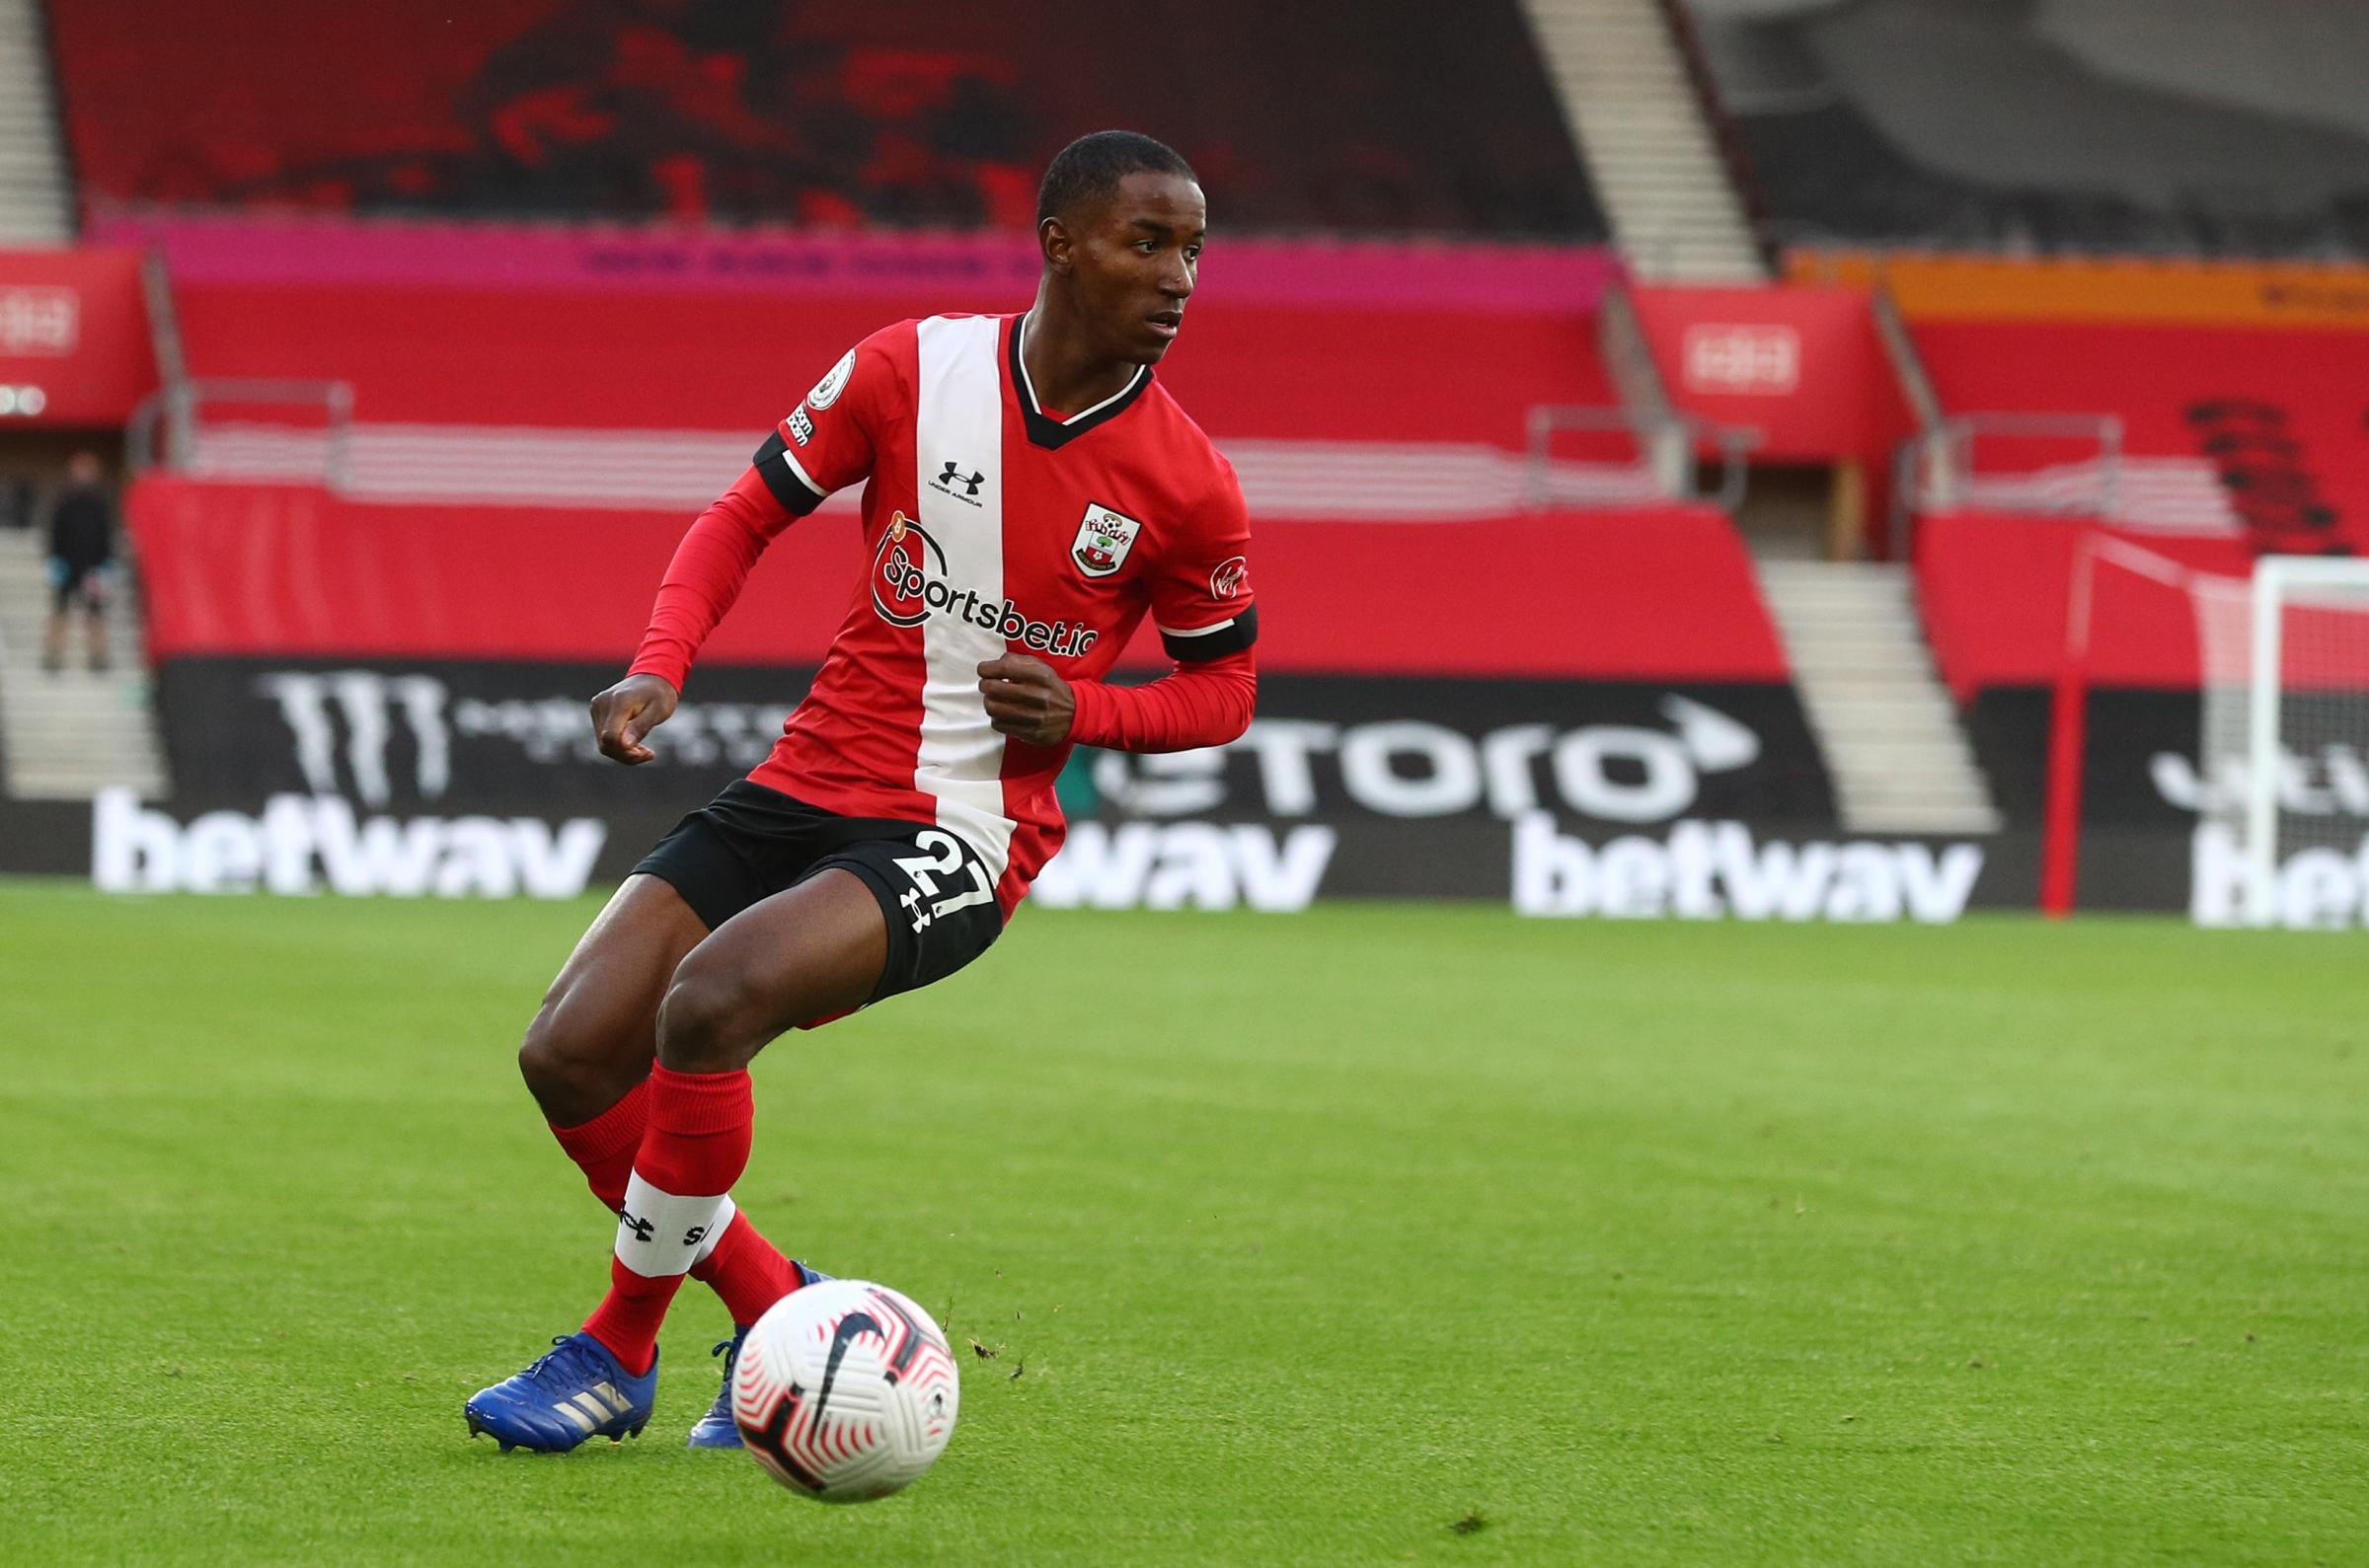 'Fantastic' Diallo is 'waiting for the chance' in Saints' midfield